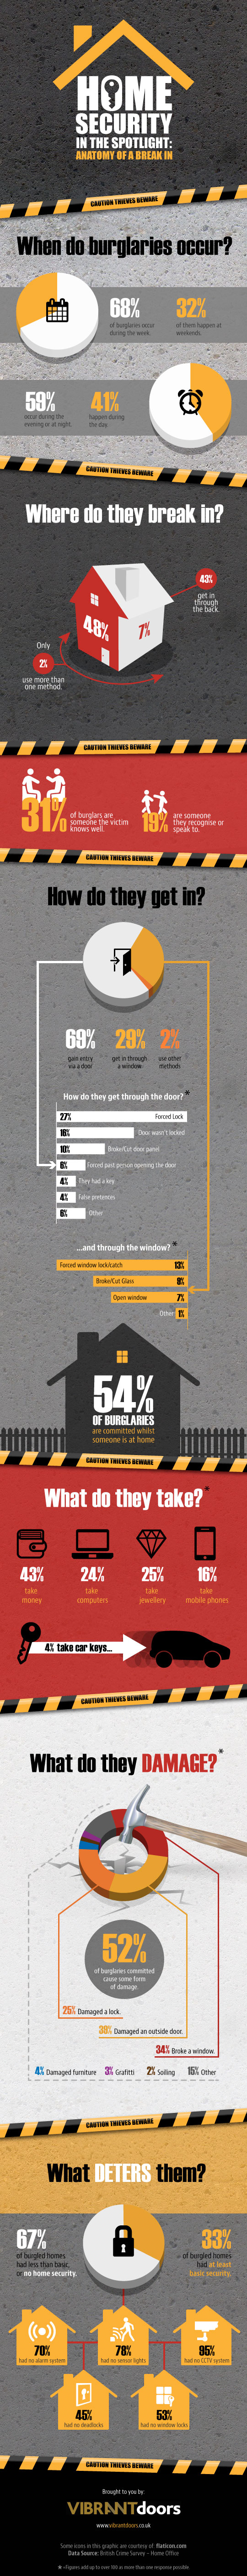 Know Your Criminals - The Surprising Face of Modern Burglars